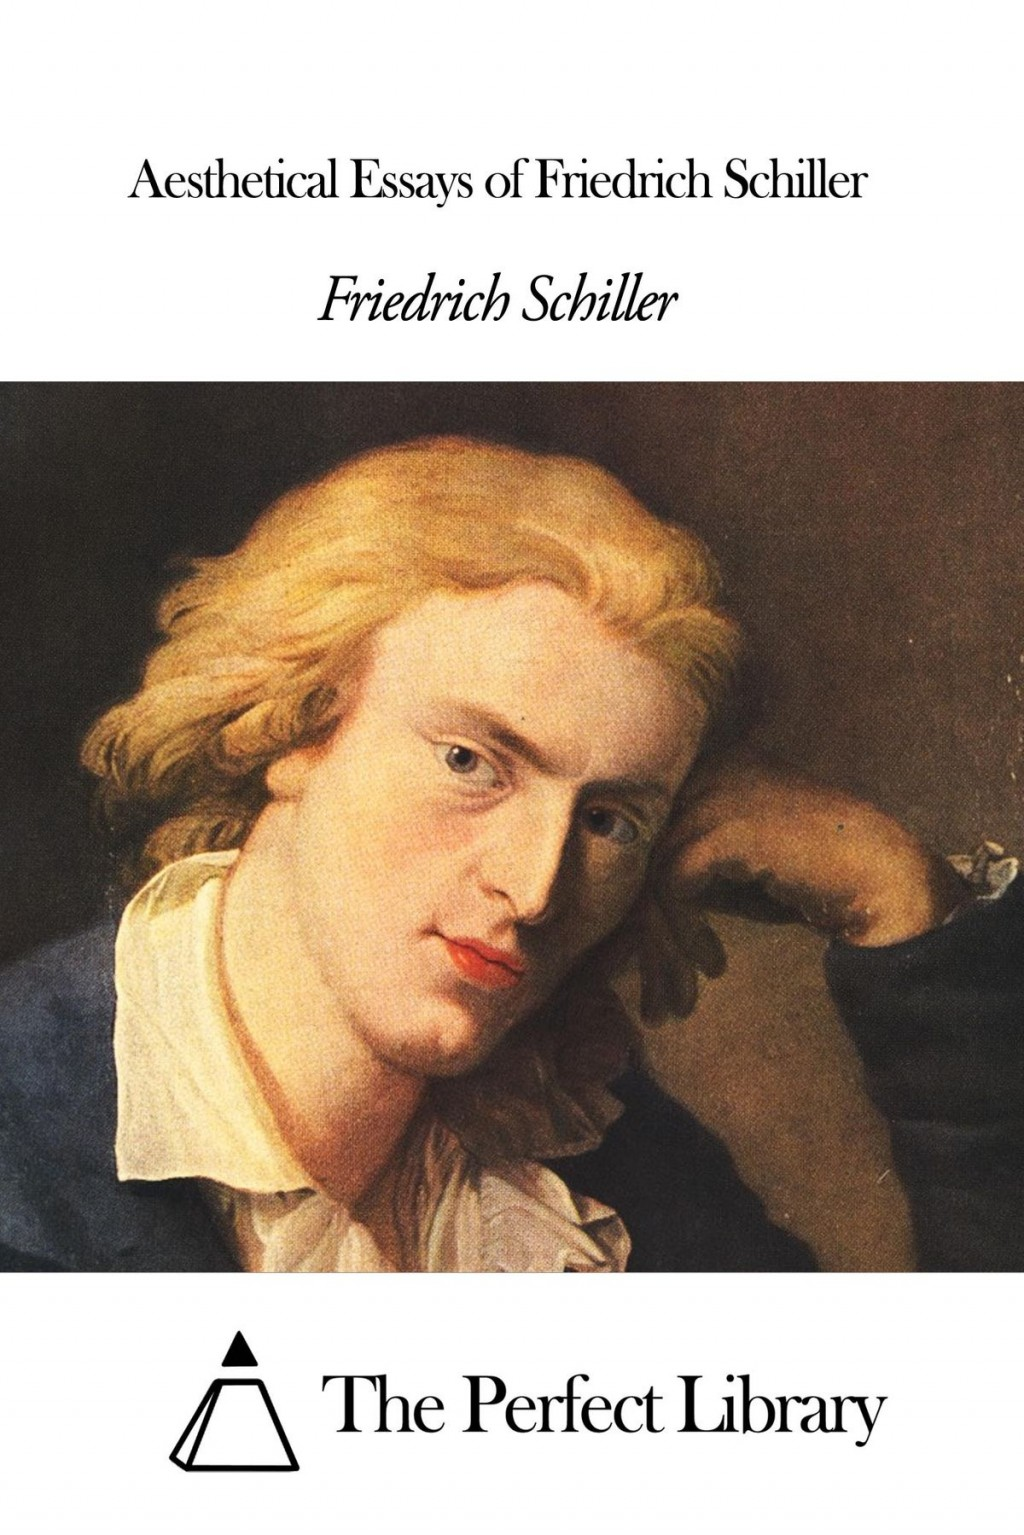 009 Essay Example Schiller Essays Aesthetical Of Friedrich Awful Large